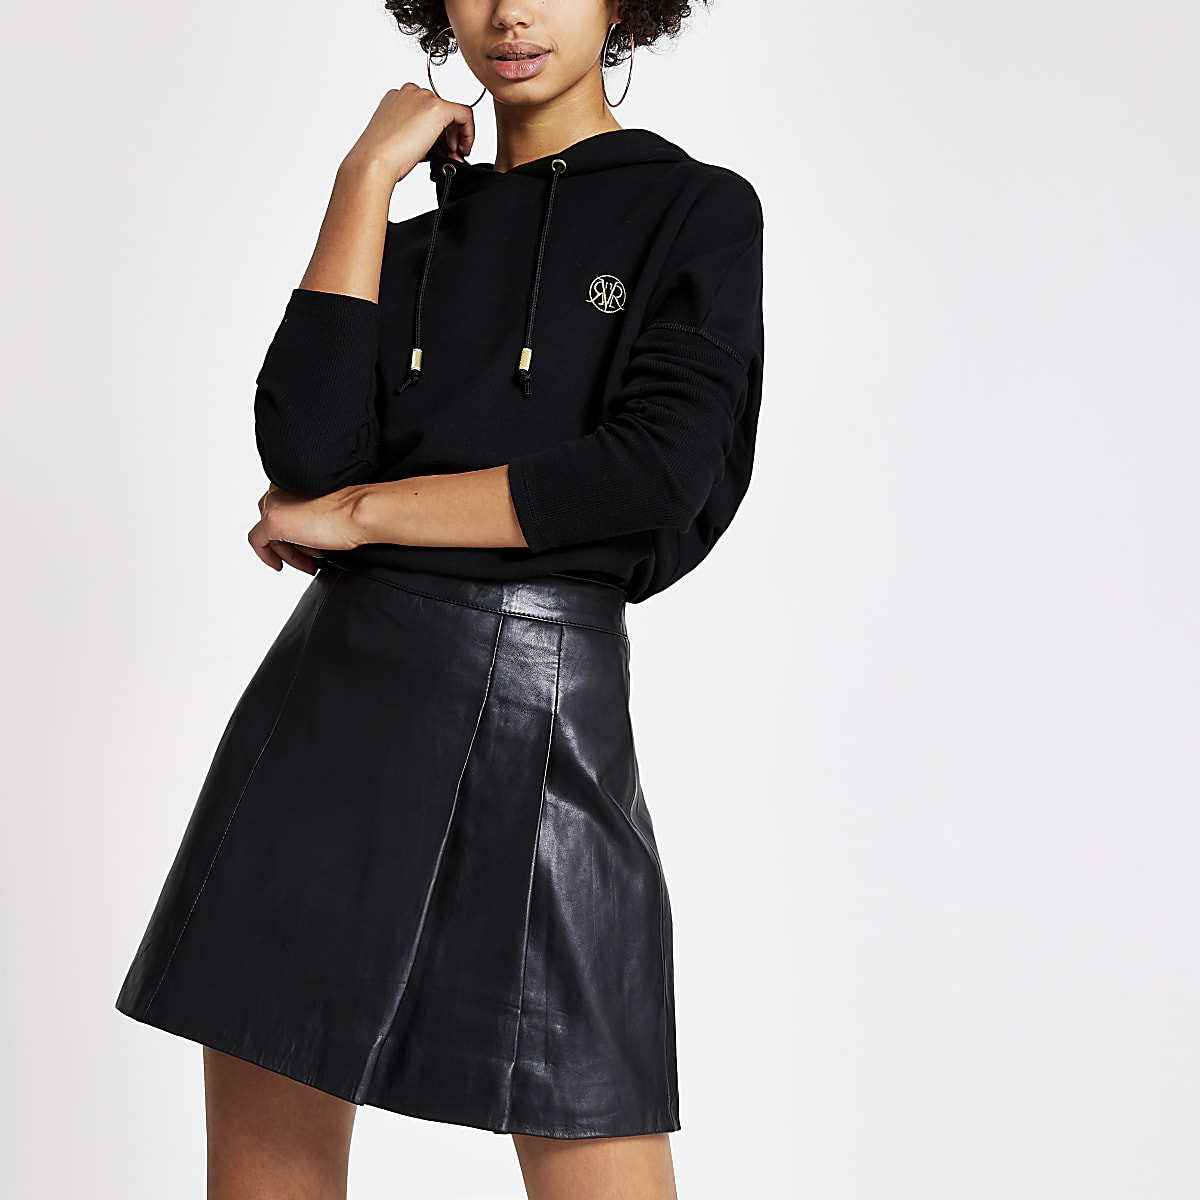 Black leather pleated kilt mini skirt